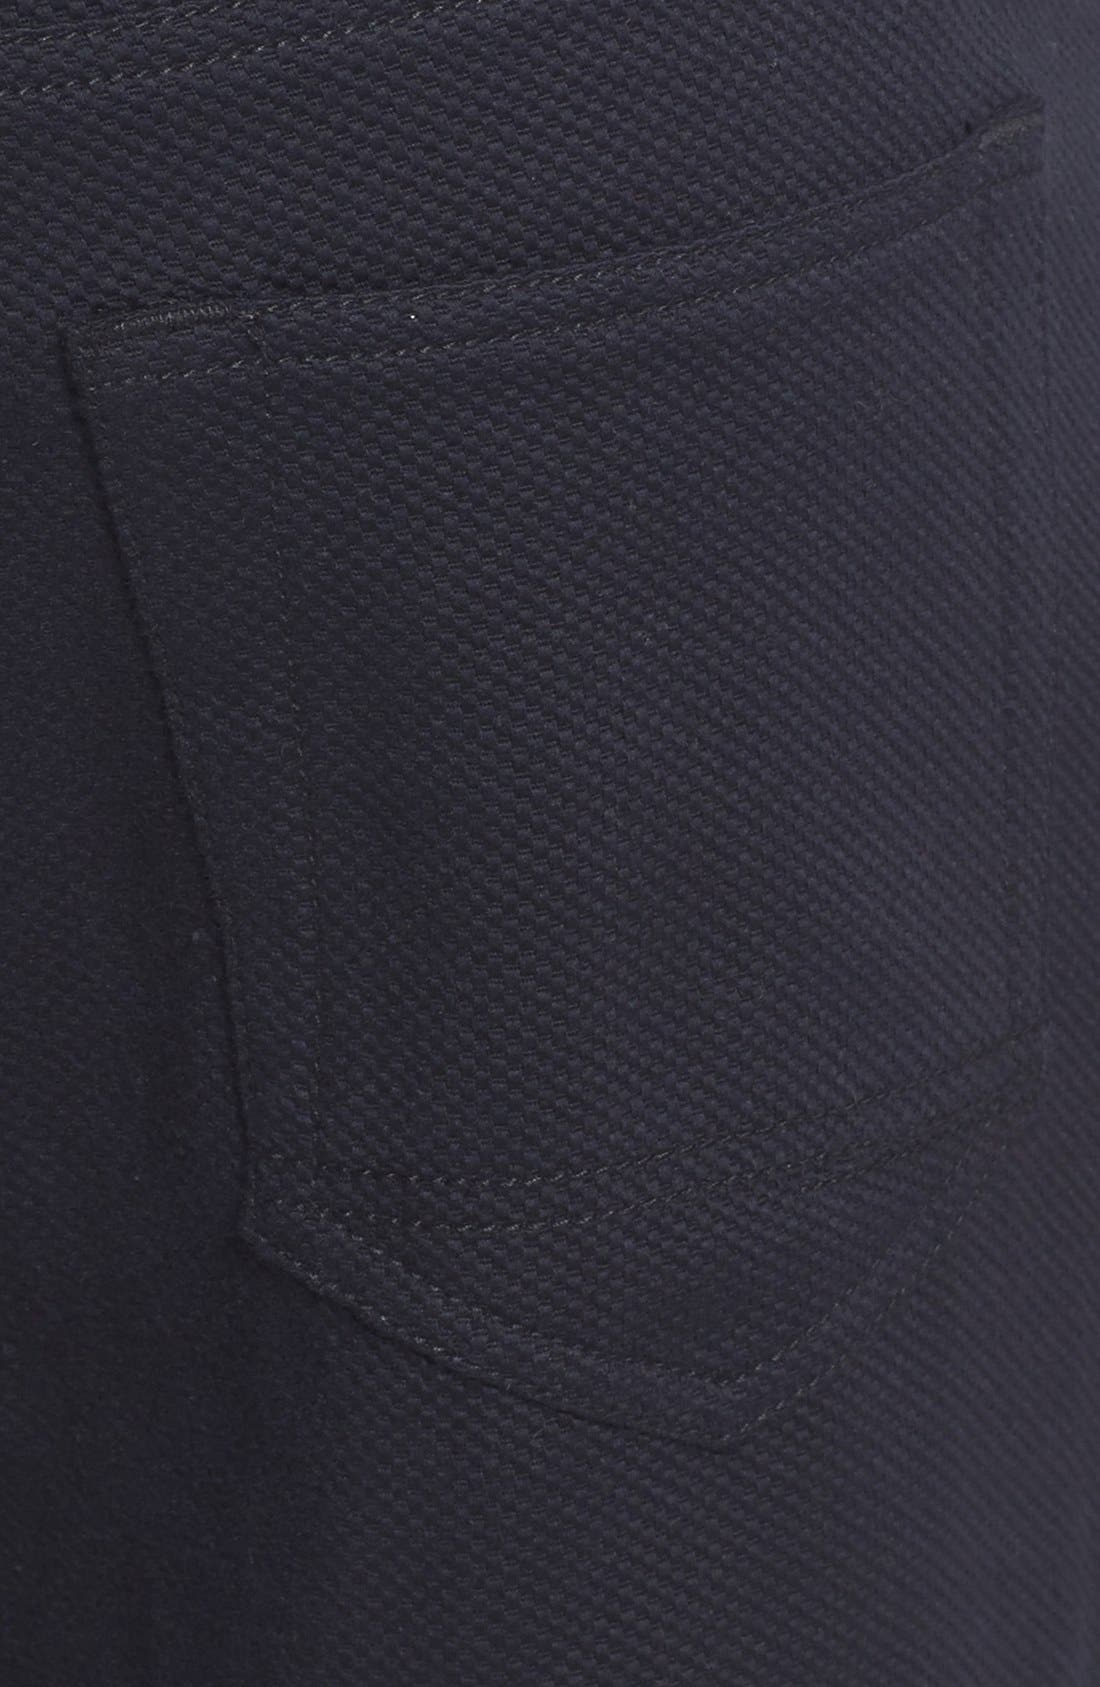 Straight Leg Five Pocket Stretch Pants,                             Alternate thumbnail 3, color,                             Black Crosshatch